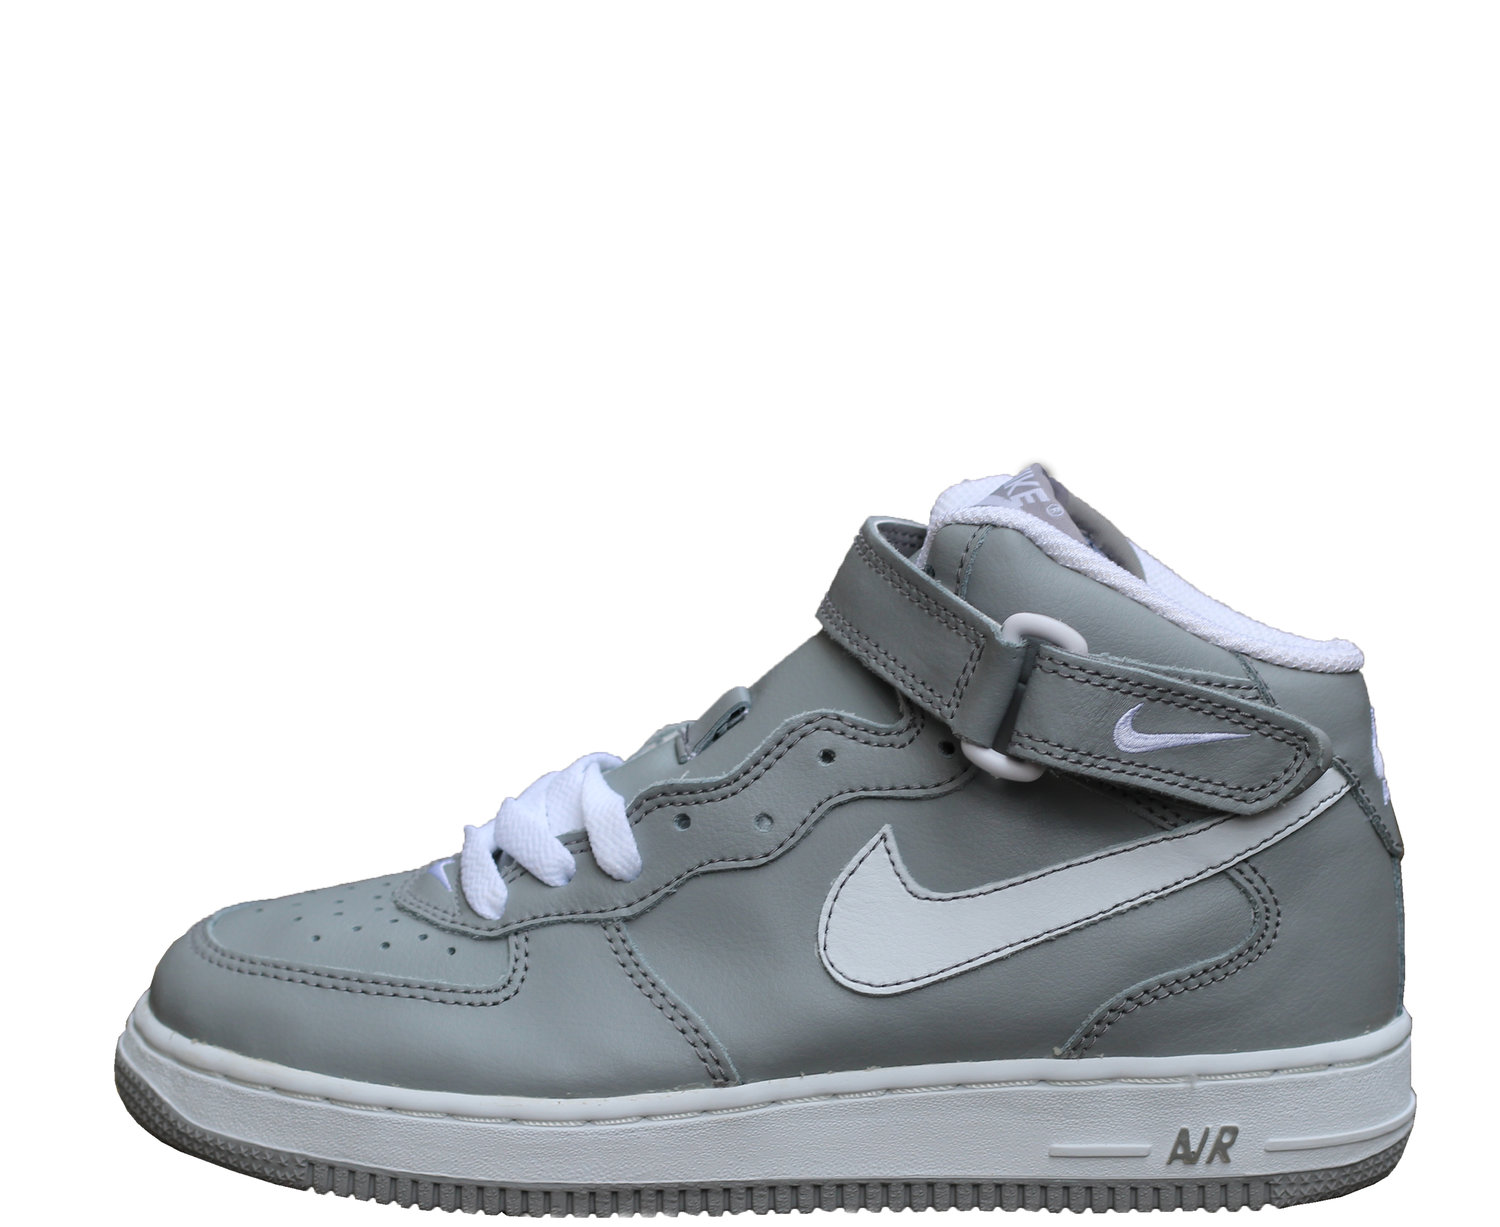 bcc3c1e9e9b1 Kids Nike Air Force 1 Mid Medium Grey   White (Size 6) DS — Roots